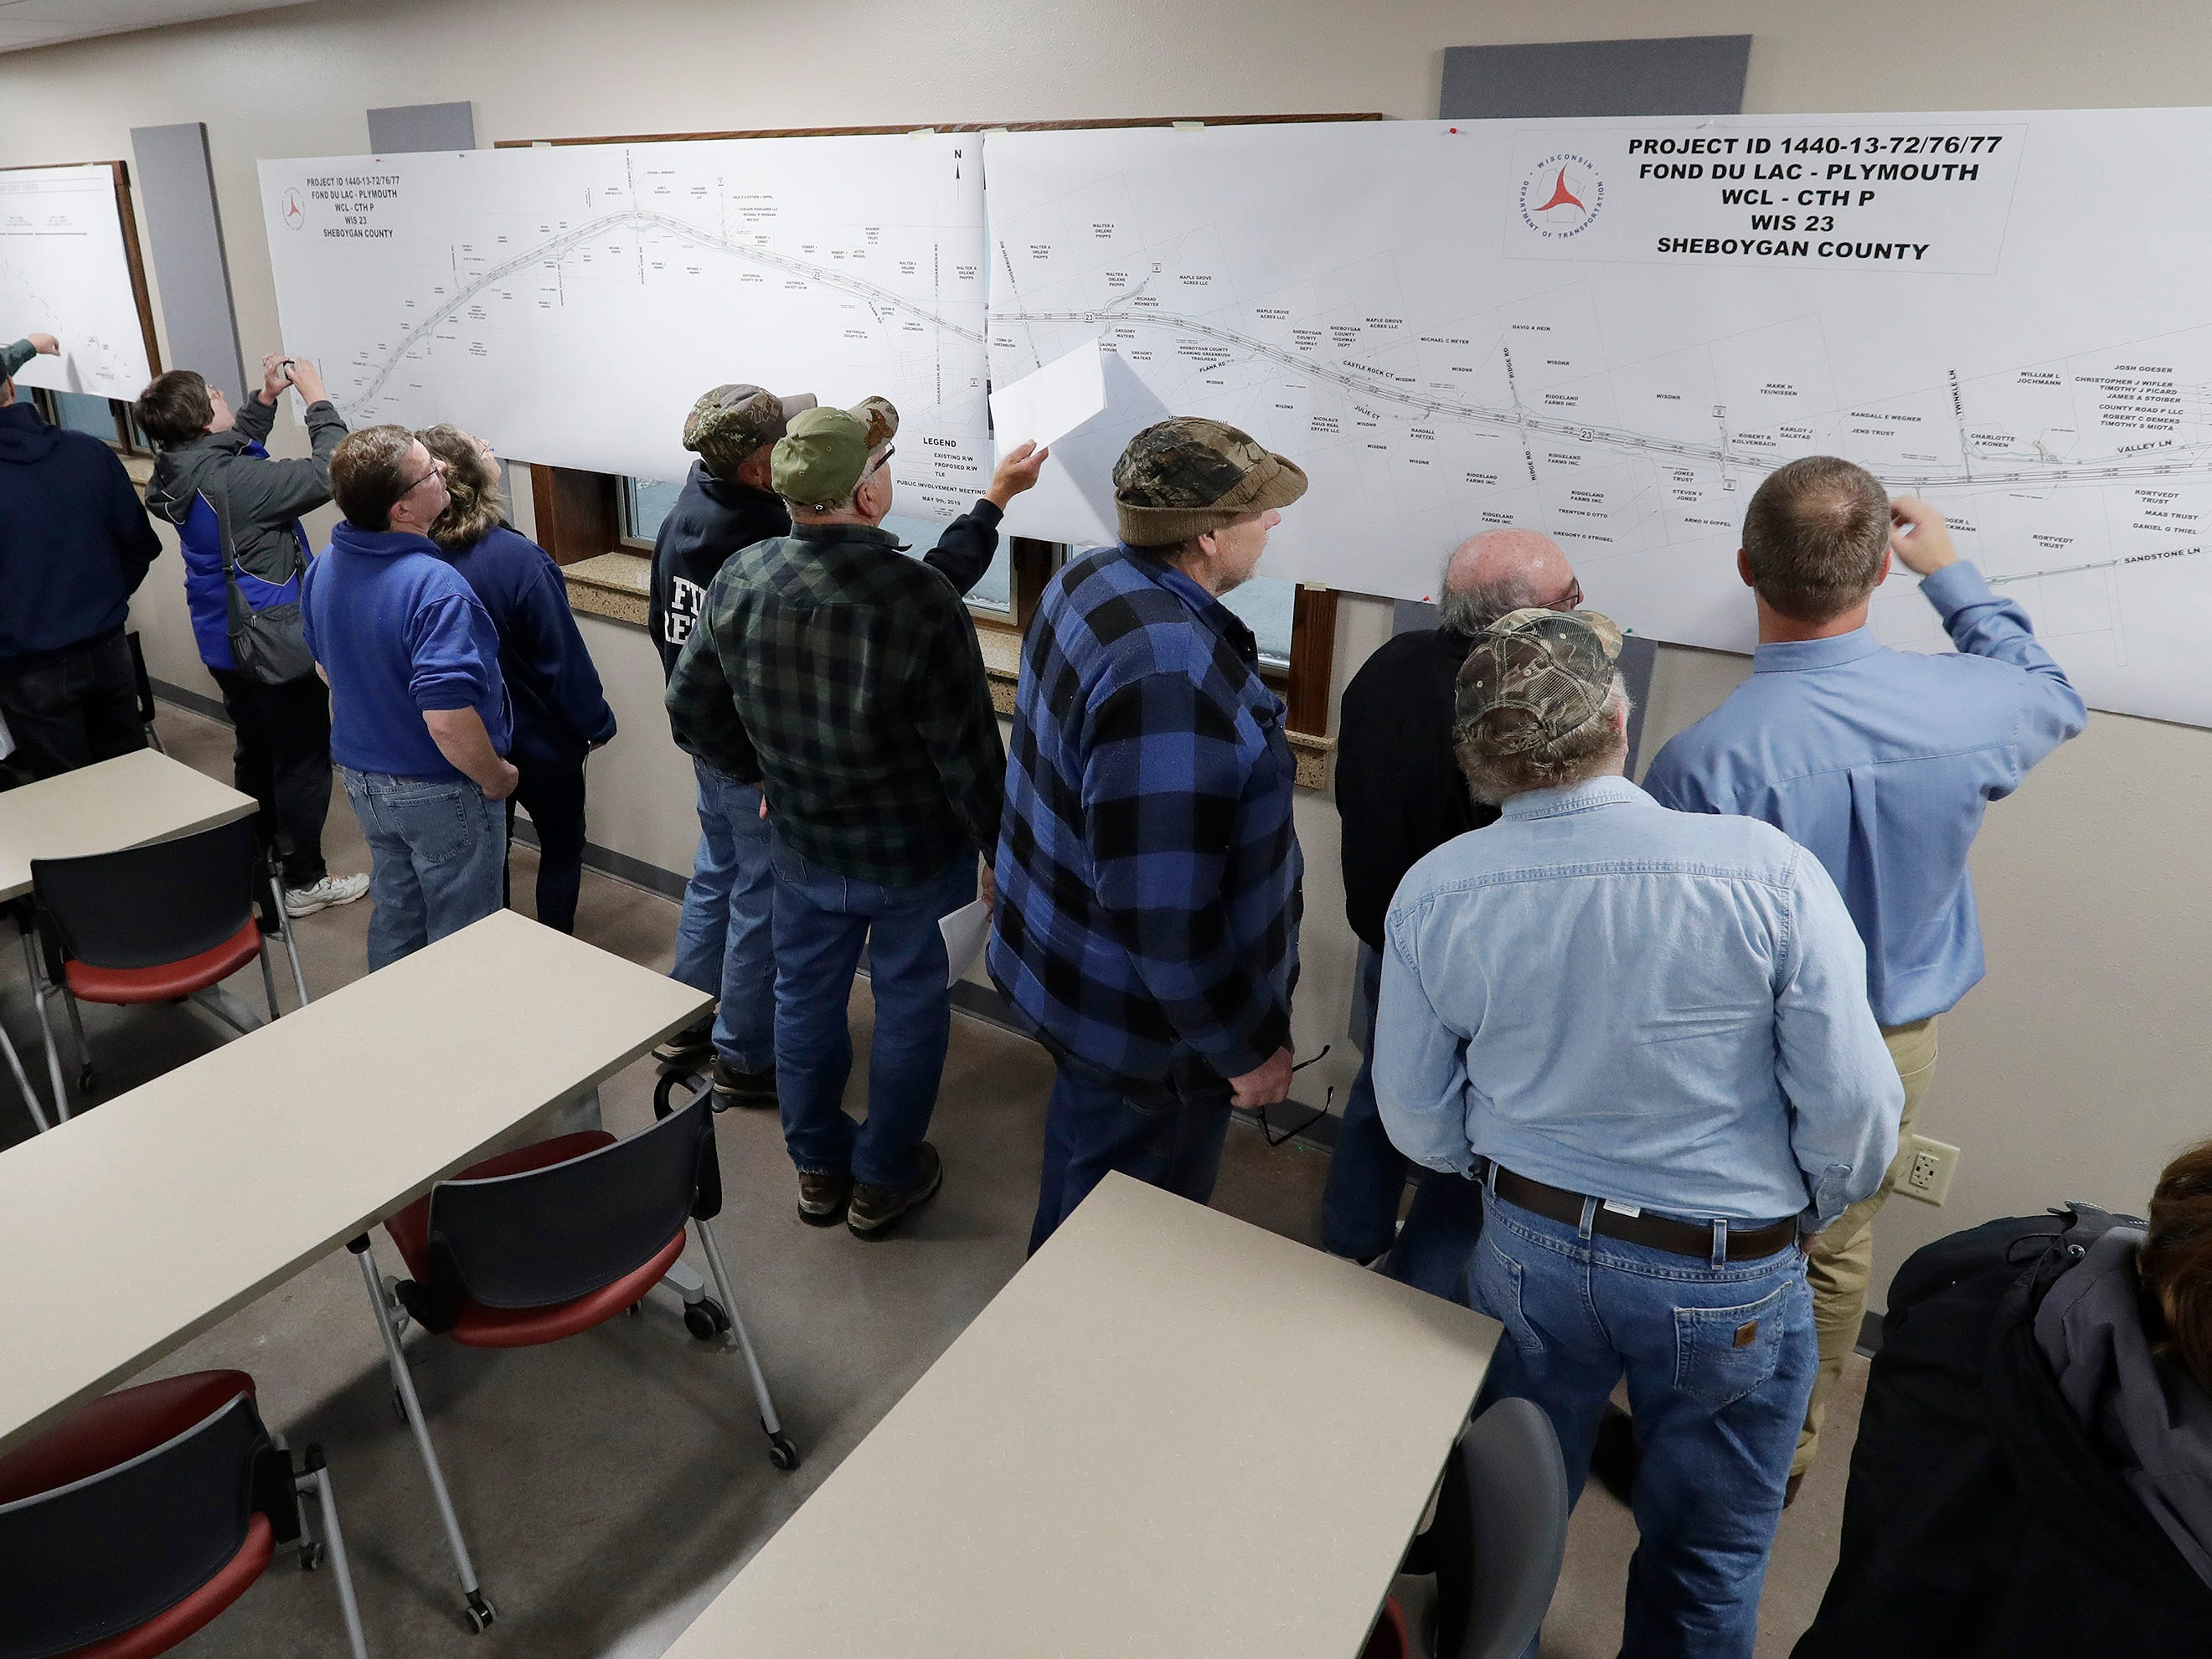 People look over state Highway 23 plans at the Sheboygan County Transportation Facility, Thursday, May 9, 2019, in Plymouth, Wis.  DOT officials displayed the construction plans for the state Highway 23 four-lane construction project.